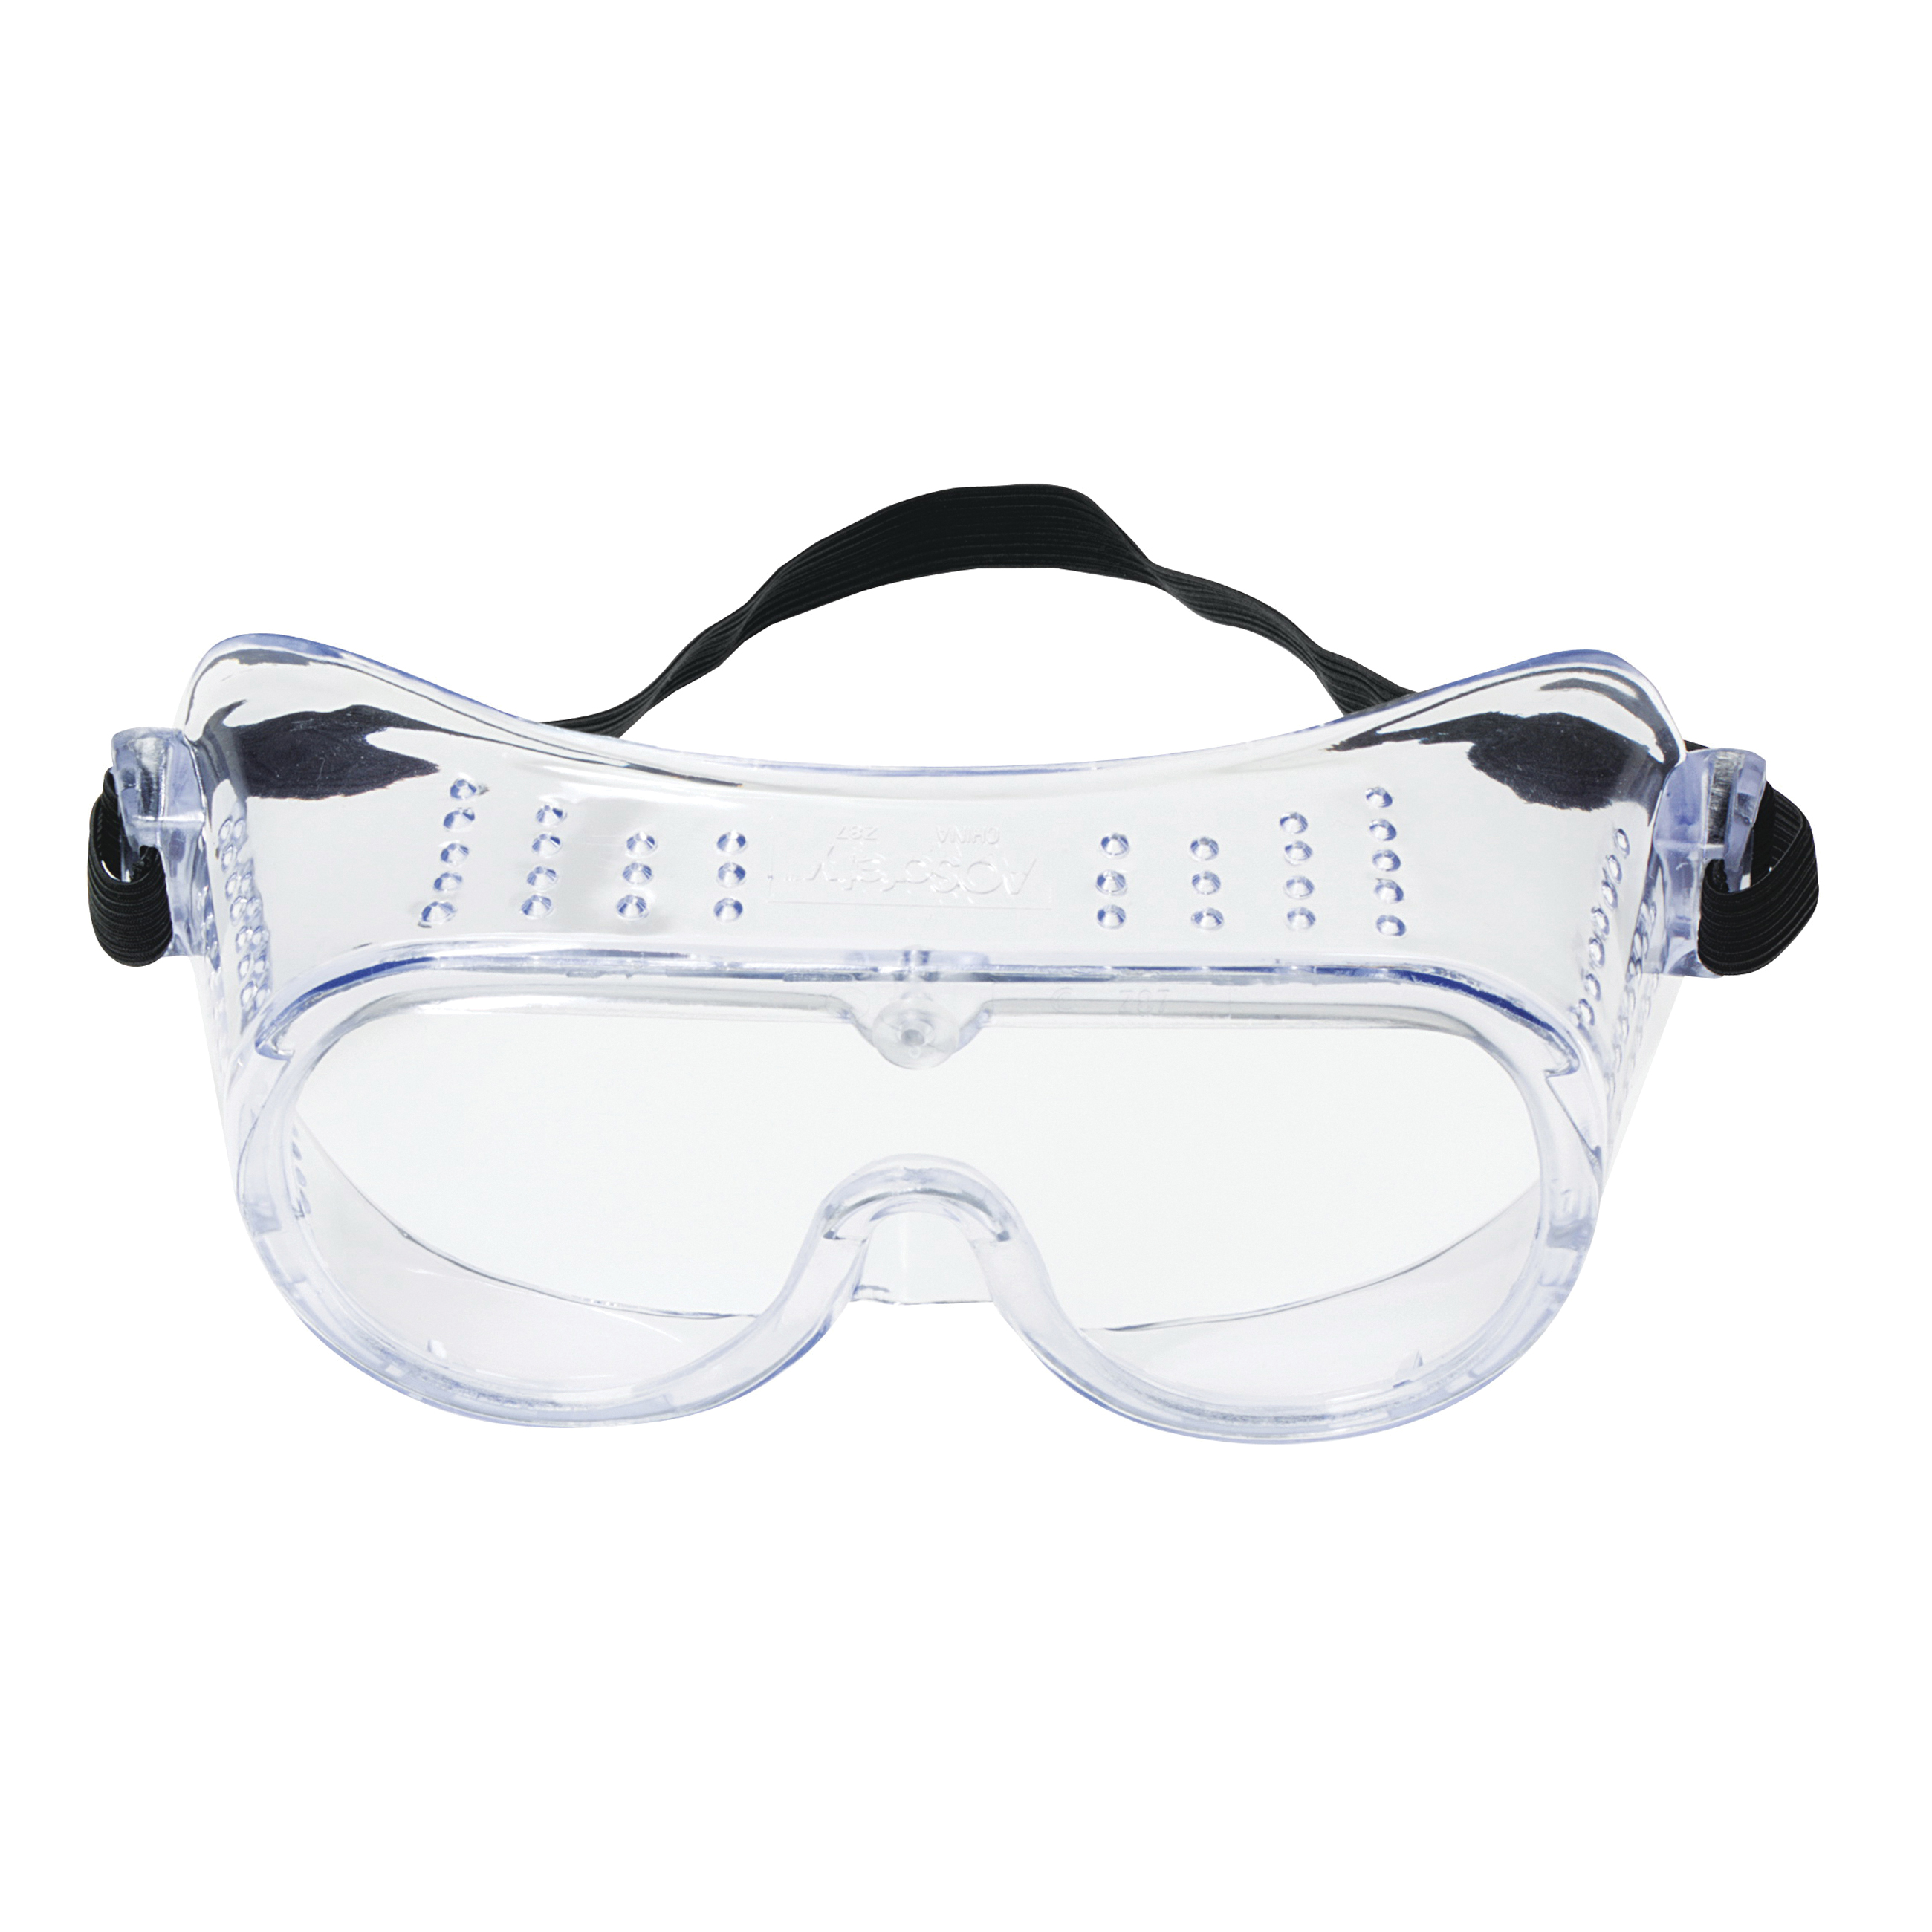 3M™ 078371-62137 40650-00000-10 Economy Safety Goggles, Anti-Fog/Impact Resistant/UV-Protective Clear Polycarbonate Lens, 99.9% % UV Protection, Elastic Strap, Specifications Met: ANSI Z87.1-2015